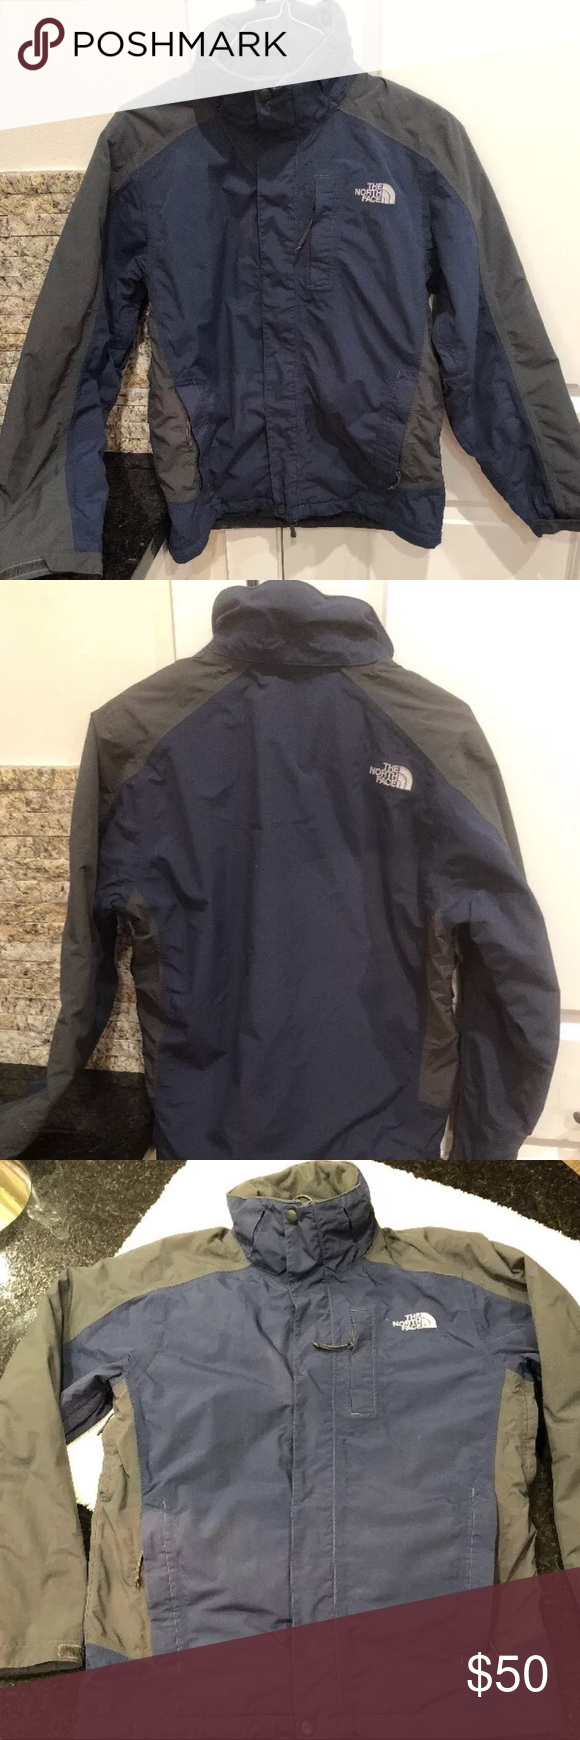 Men S The North Face Hyvent Blue And Grey Jacket Gray Jacket Jackets North Face Jacket [ 1740 x 580 Pixel ]